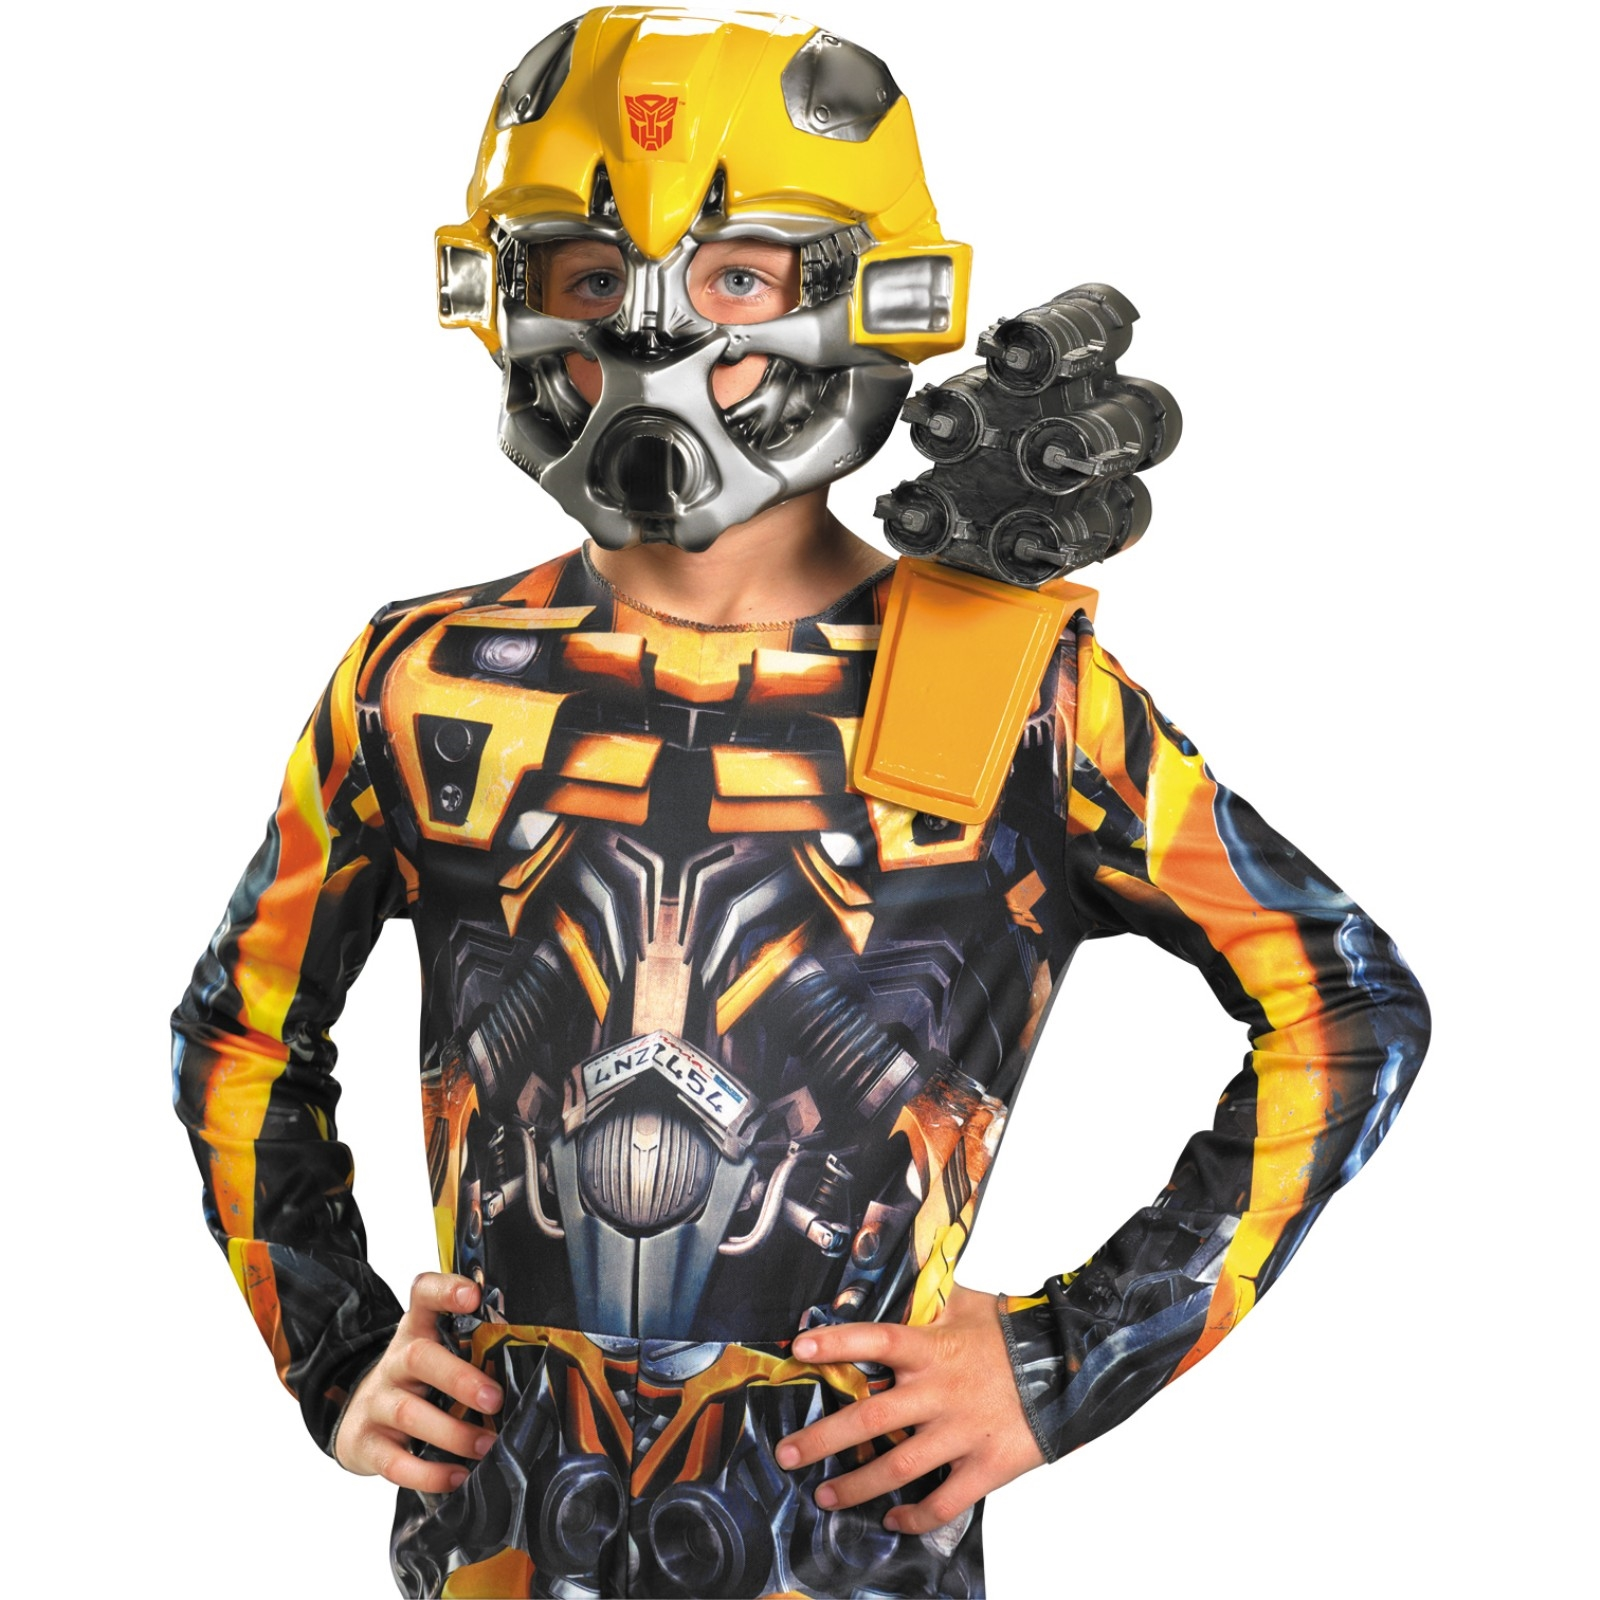 transformers 4 bumble bee costume